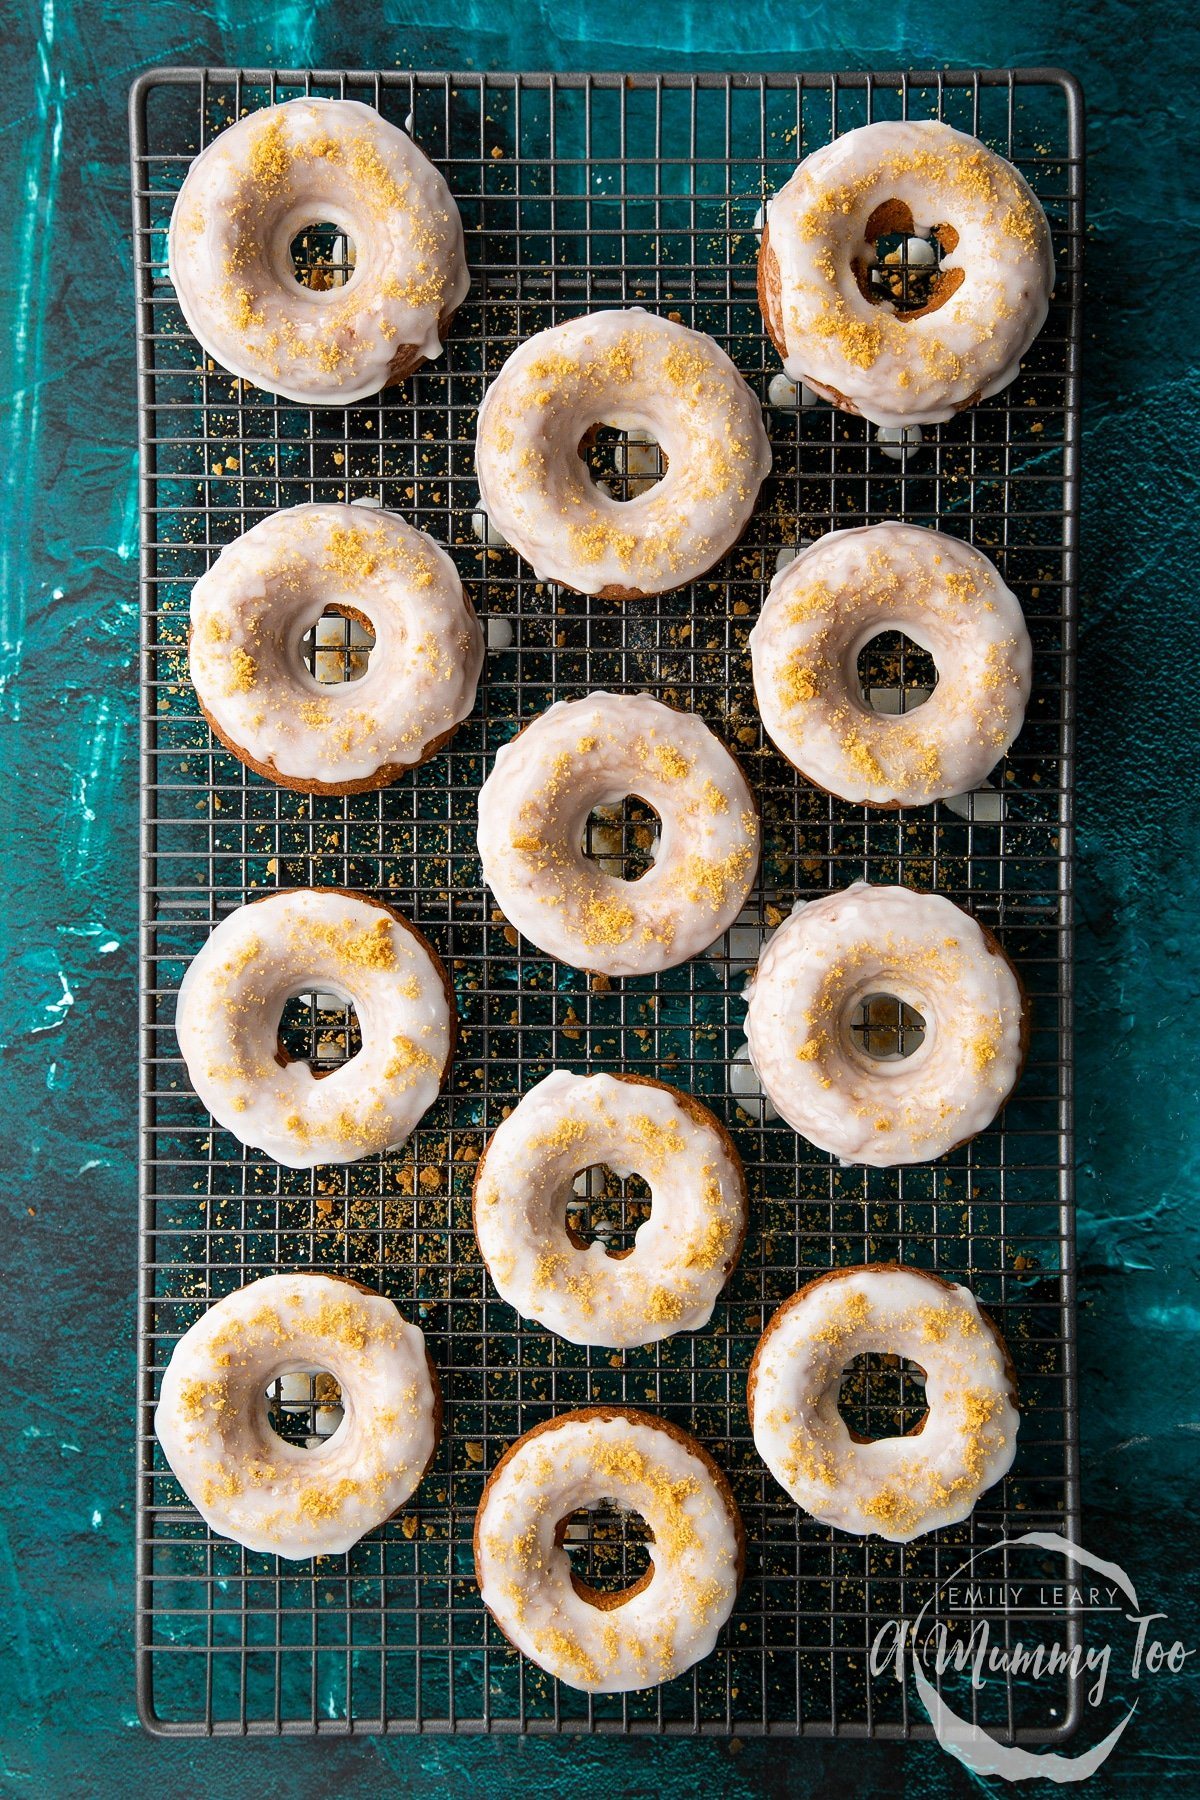 Freshly baked gingerbread donuts on a wire cooling rack. They have been dipped in lemon glaze and sprinkled with crushed gingernut biscuits.